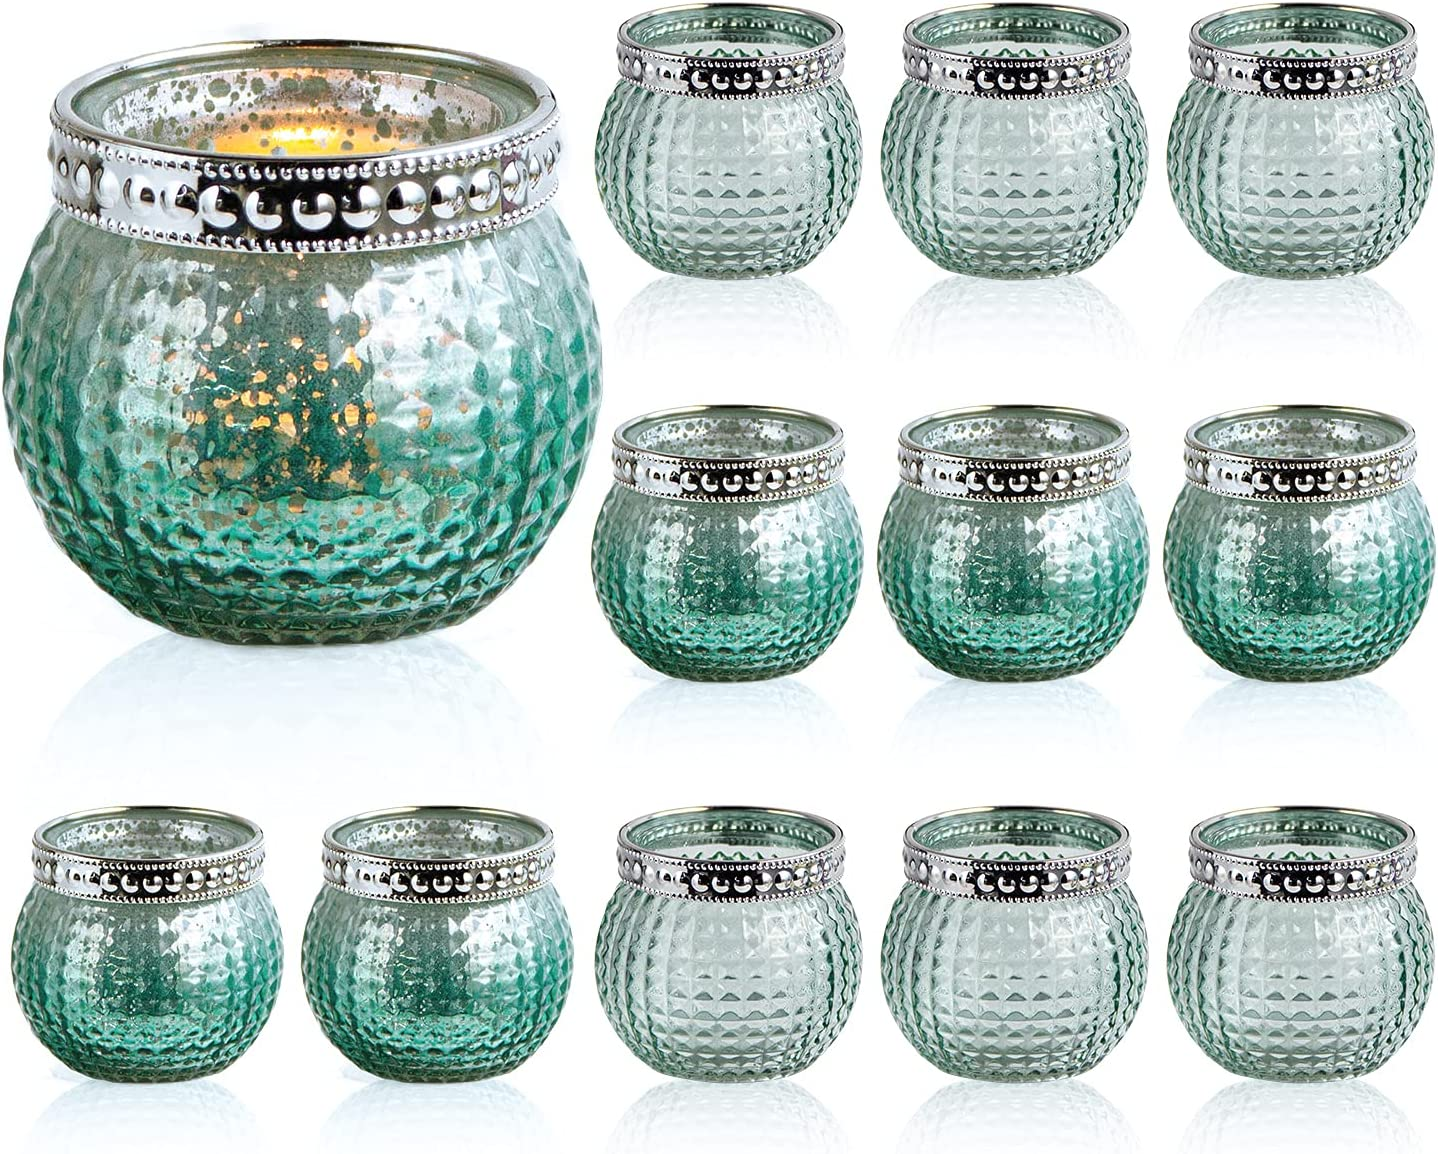 """Set of 12 Small Glass Votives, Tealight Candle Holders 2.3""""/5.9cm High, Mixed Green Color, Wedding Votives ,Vintage Boho Glass Candle Holders for Table Centerpiece Home Decor (Mint Green-12 Pack): Kitchen & Dining"""